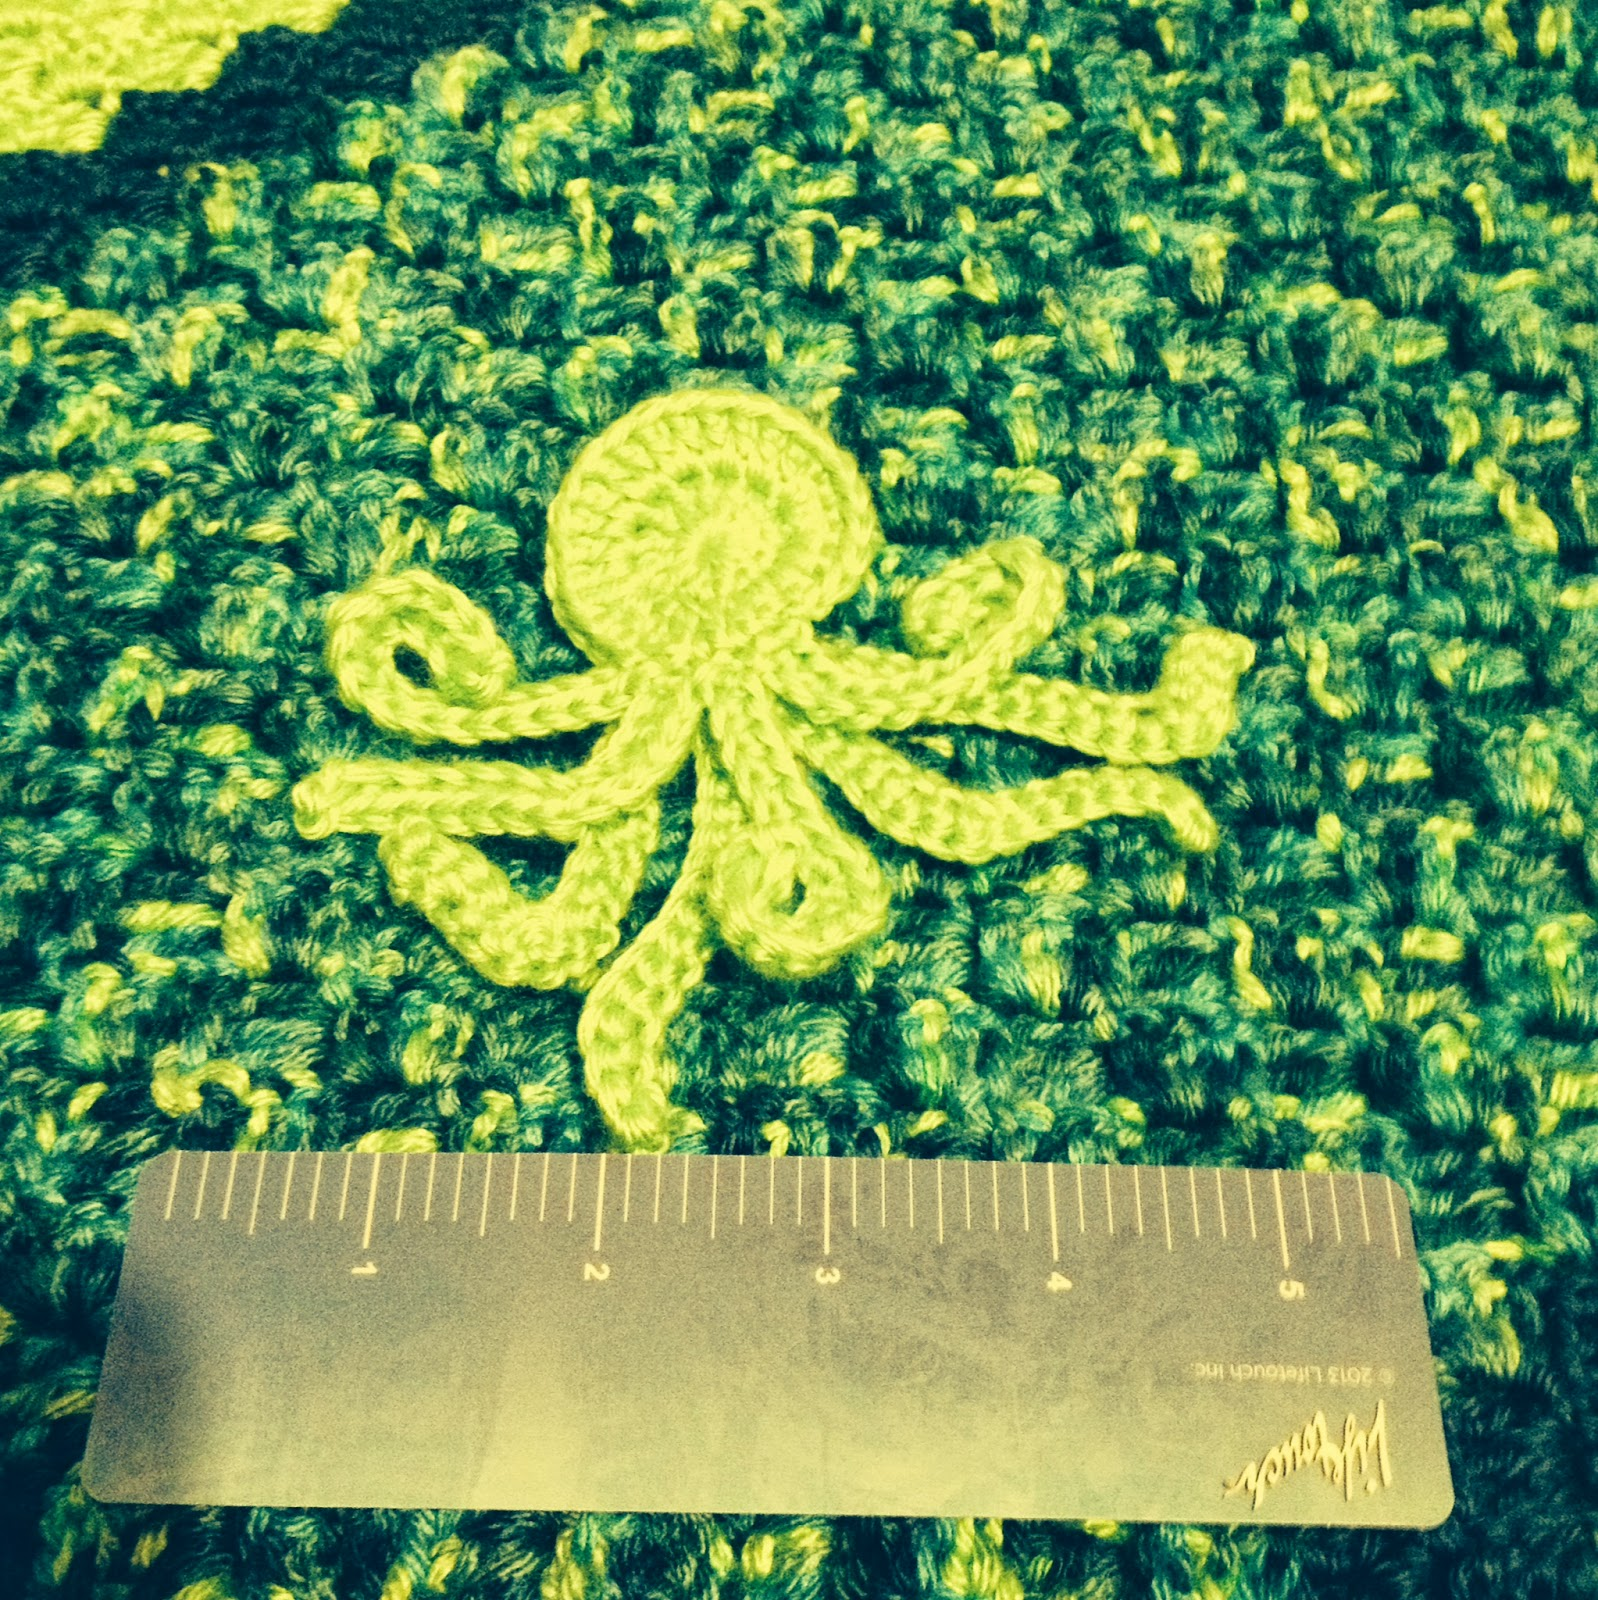 8 or 4 Legged Octopus Applique ~ Manda Proell - MandaLynn's Crochet Treasures